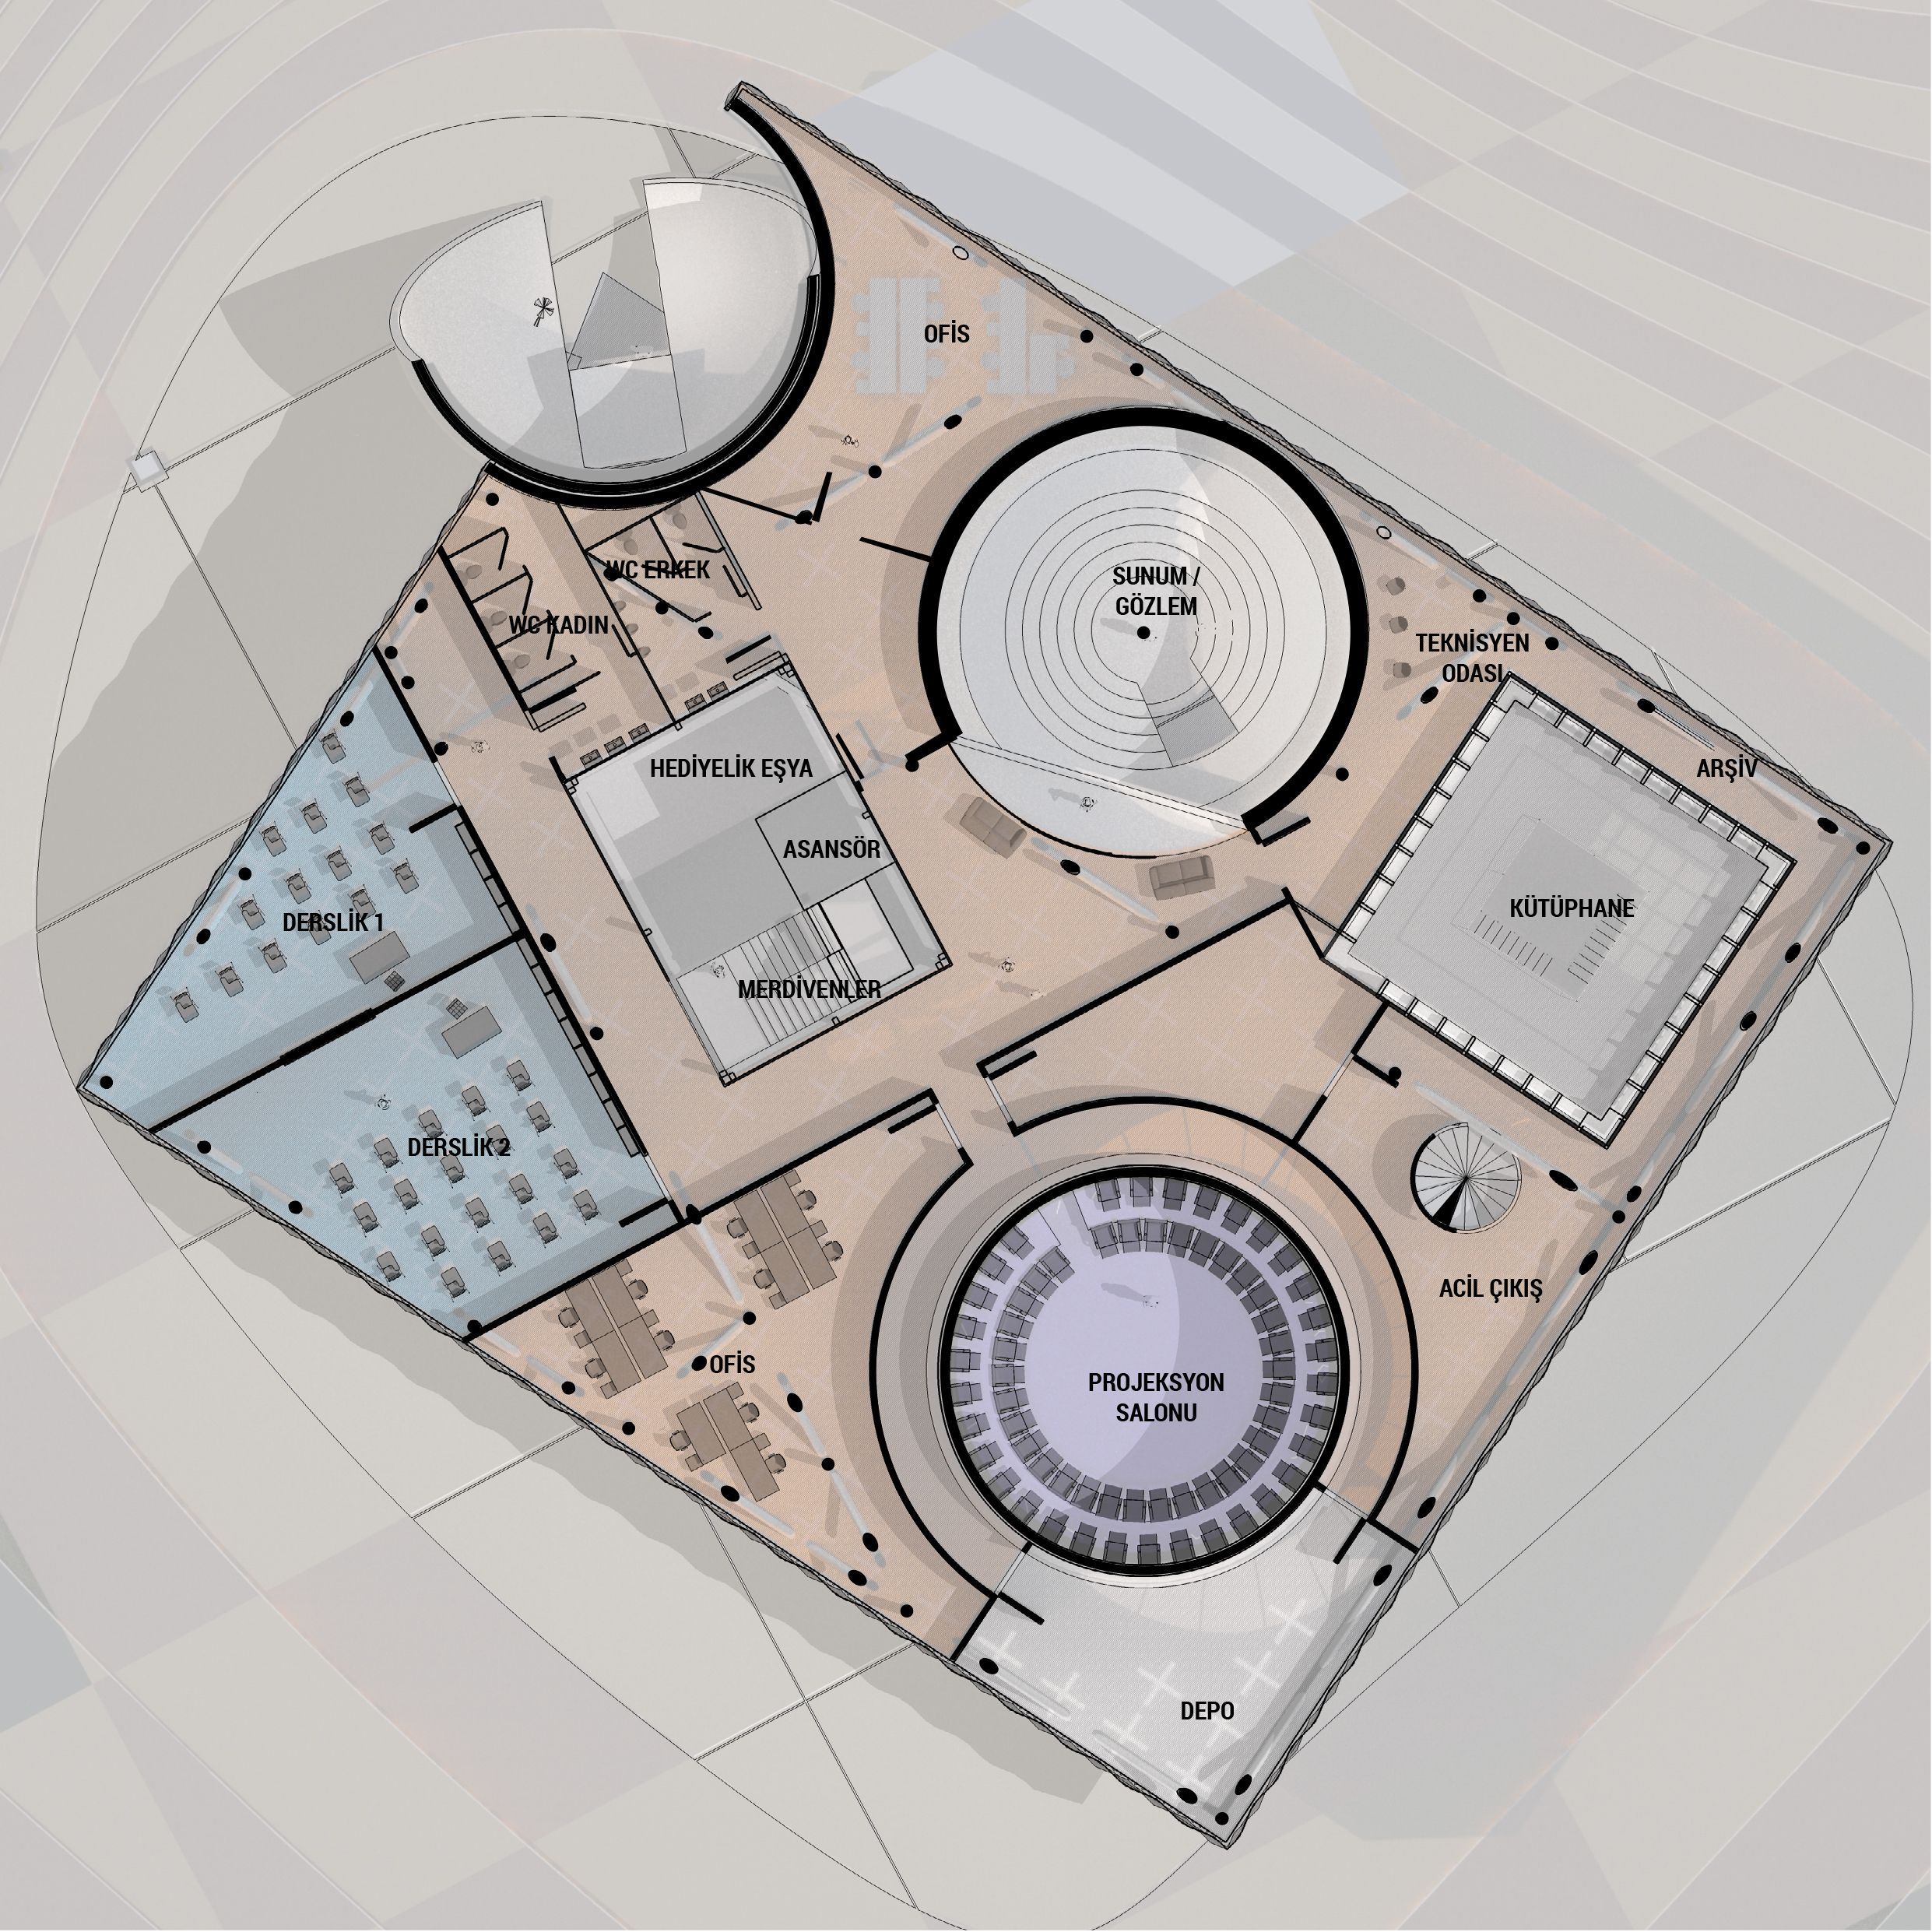 Kirsehir Planetarium Competition Entry by Building Office (2016) Design by Aras Burak